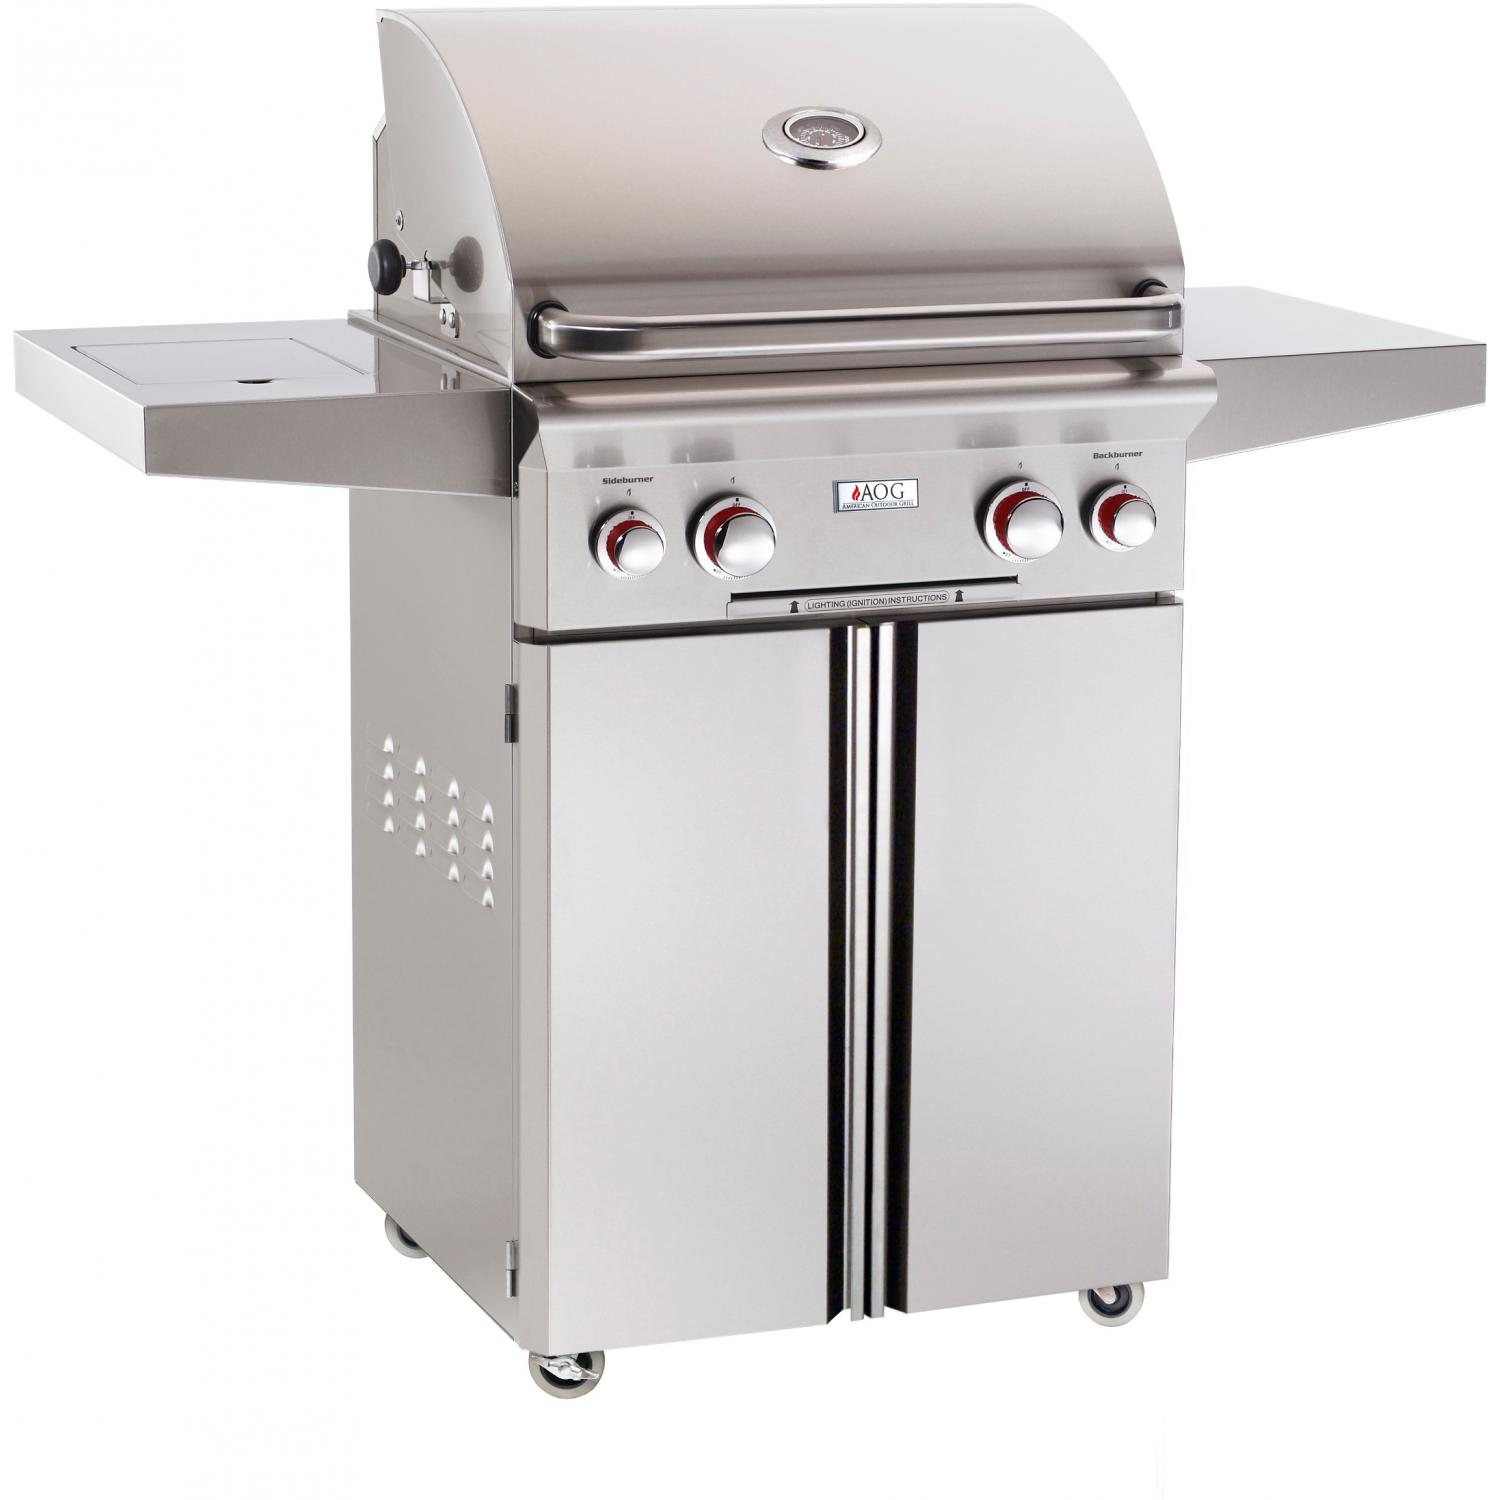 American Outdoor Grill T-Series 24-Inch Propane Gas Grill On Cart W/ Rotisserie & Side Burner 2894444